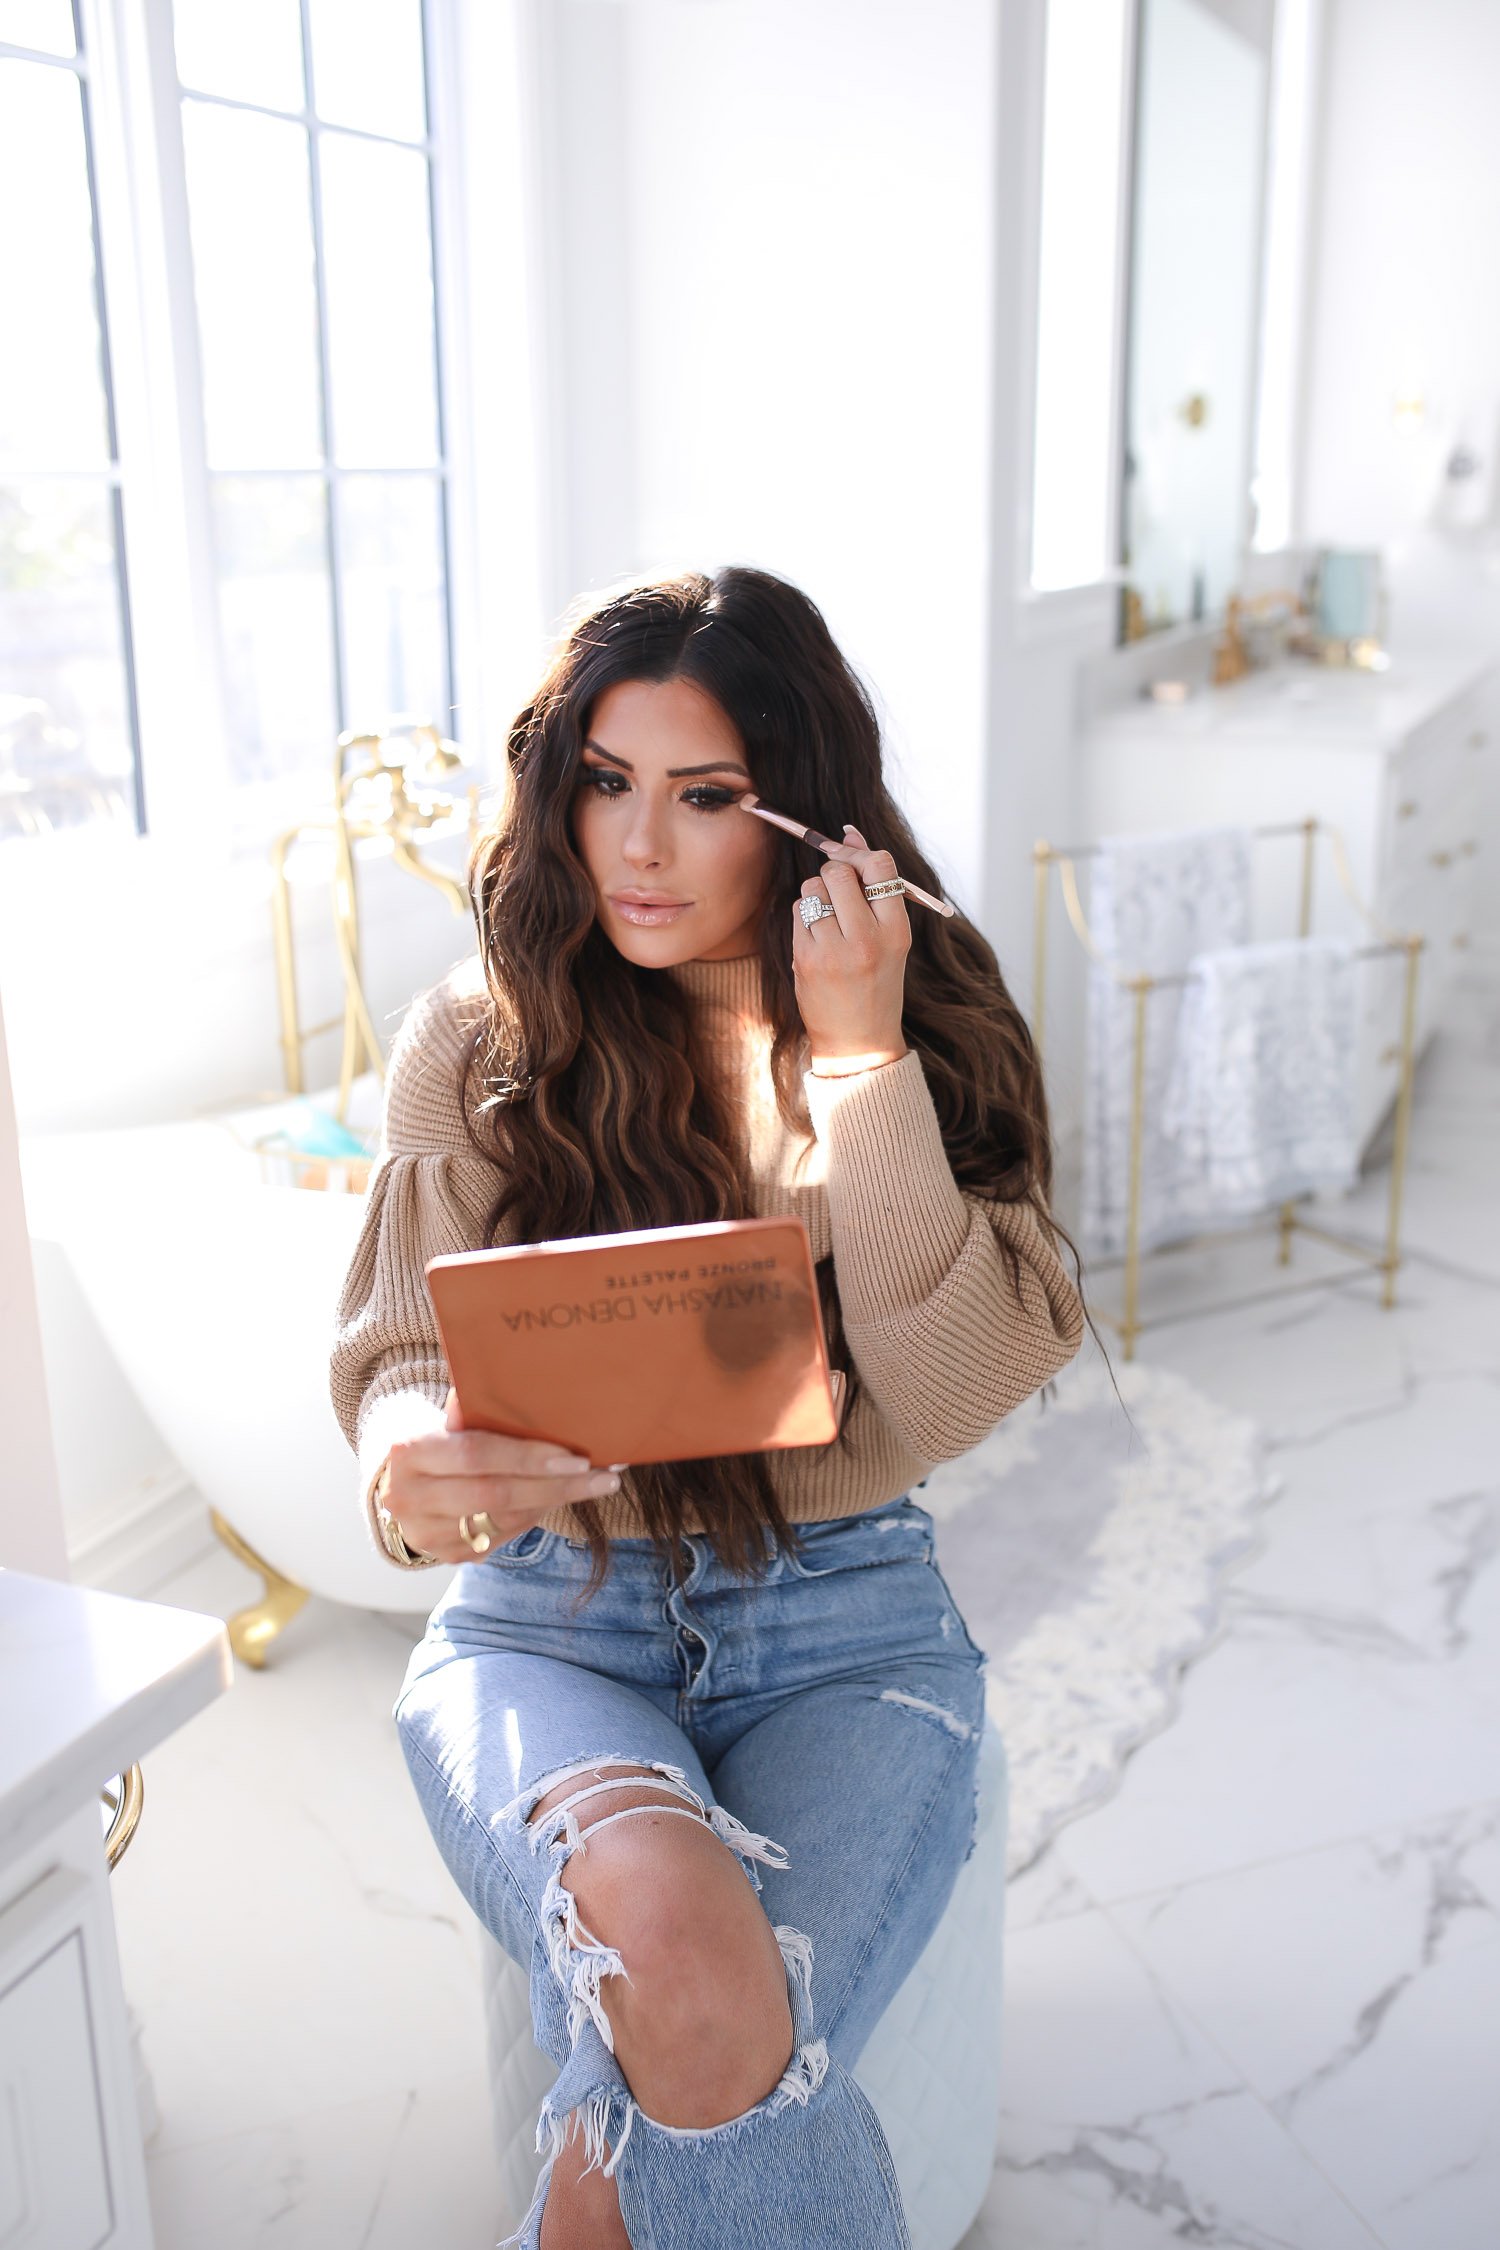 Sephora savings event fall 2020, beauty blogger sephora favorites fall 2020, emily ann gemma |Sephora Beauty Insider Sale by popular US beauty blog, The Sweetest Thing: image of Emily Gemma wearing a puff sleeve turtleneck sweater, Rolex watch, high waist distressed jeans and sitting on a white stool as she applies some eyeshadow.